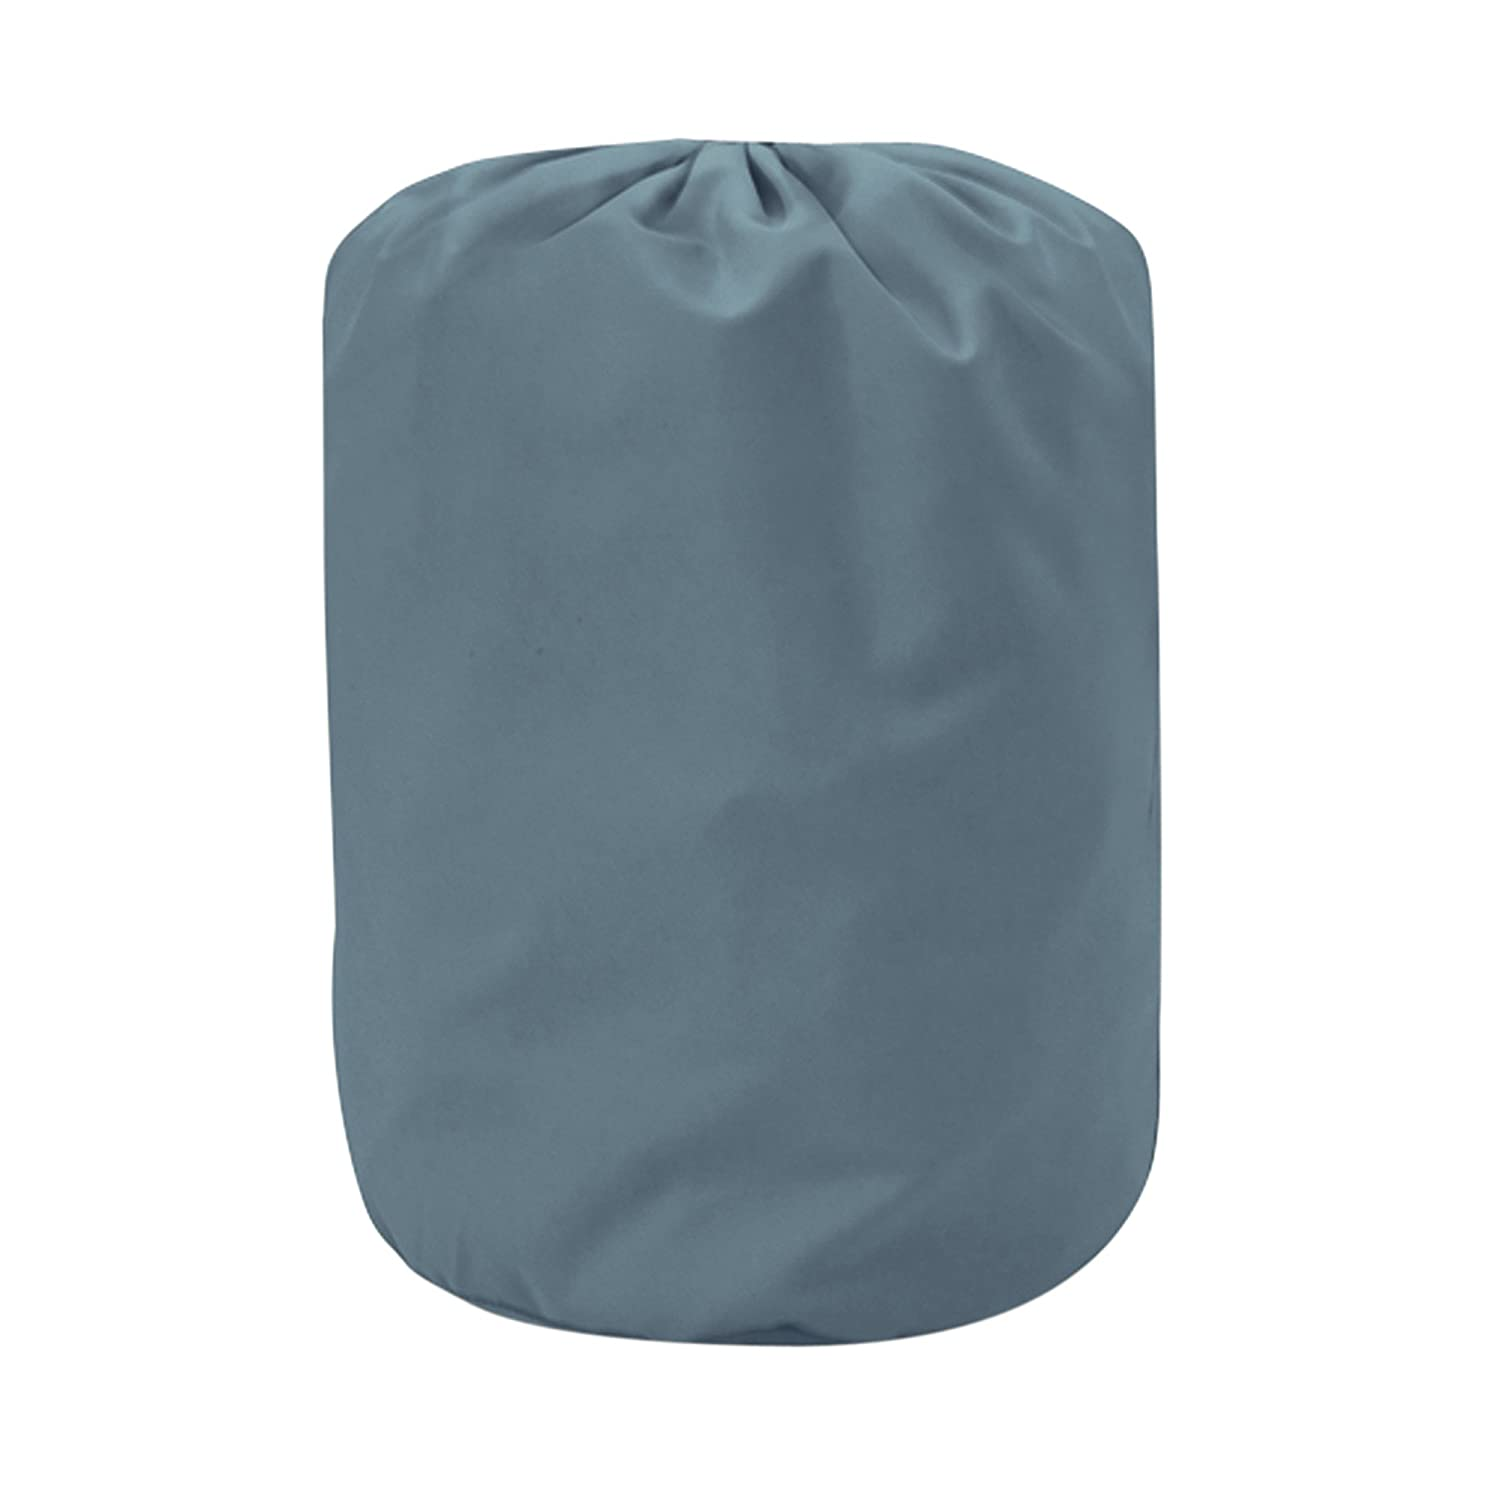 Classic Accessories OverDrive PolyPro 1 Compact Sedan Car Cover 10-011-241001-00